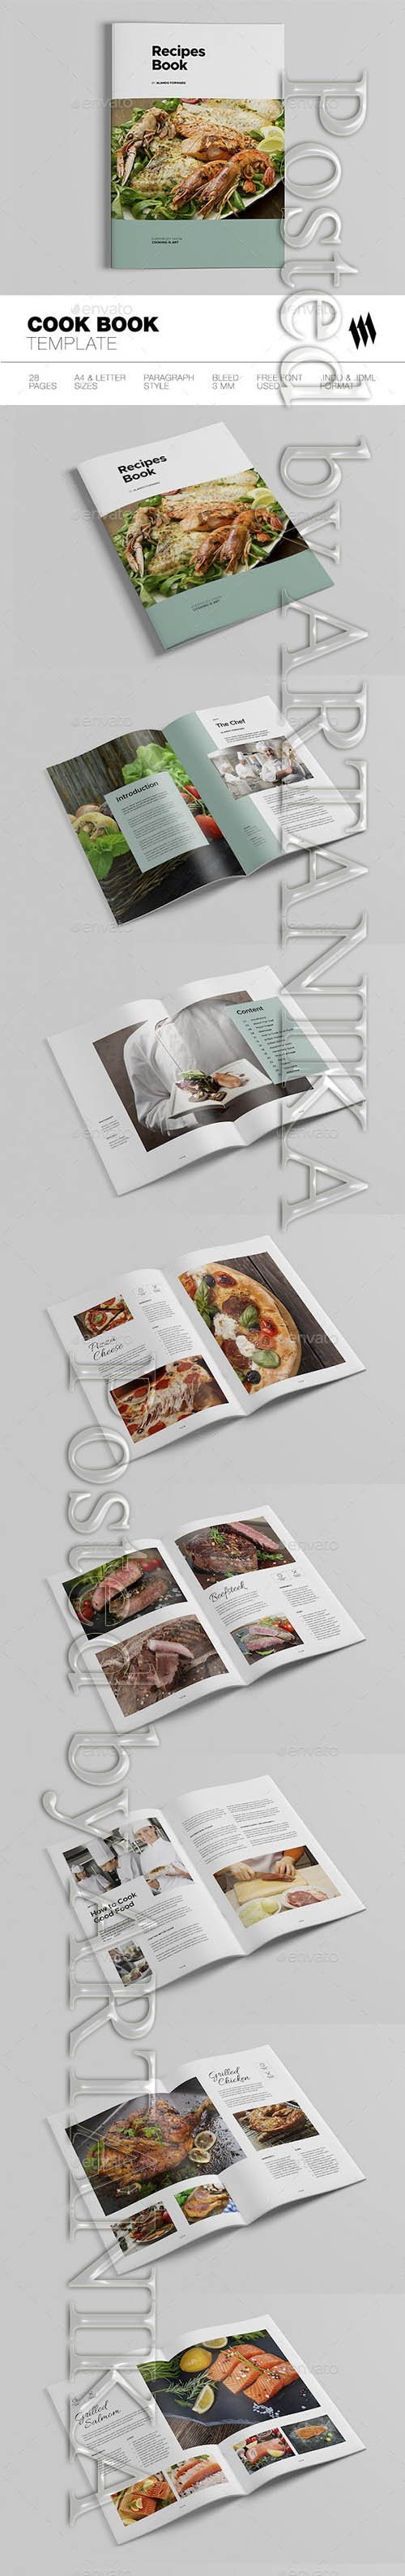 Graphicriver - Cookbook / Recipe Book 19242715